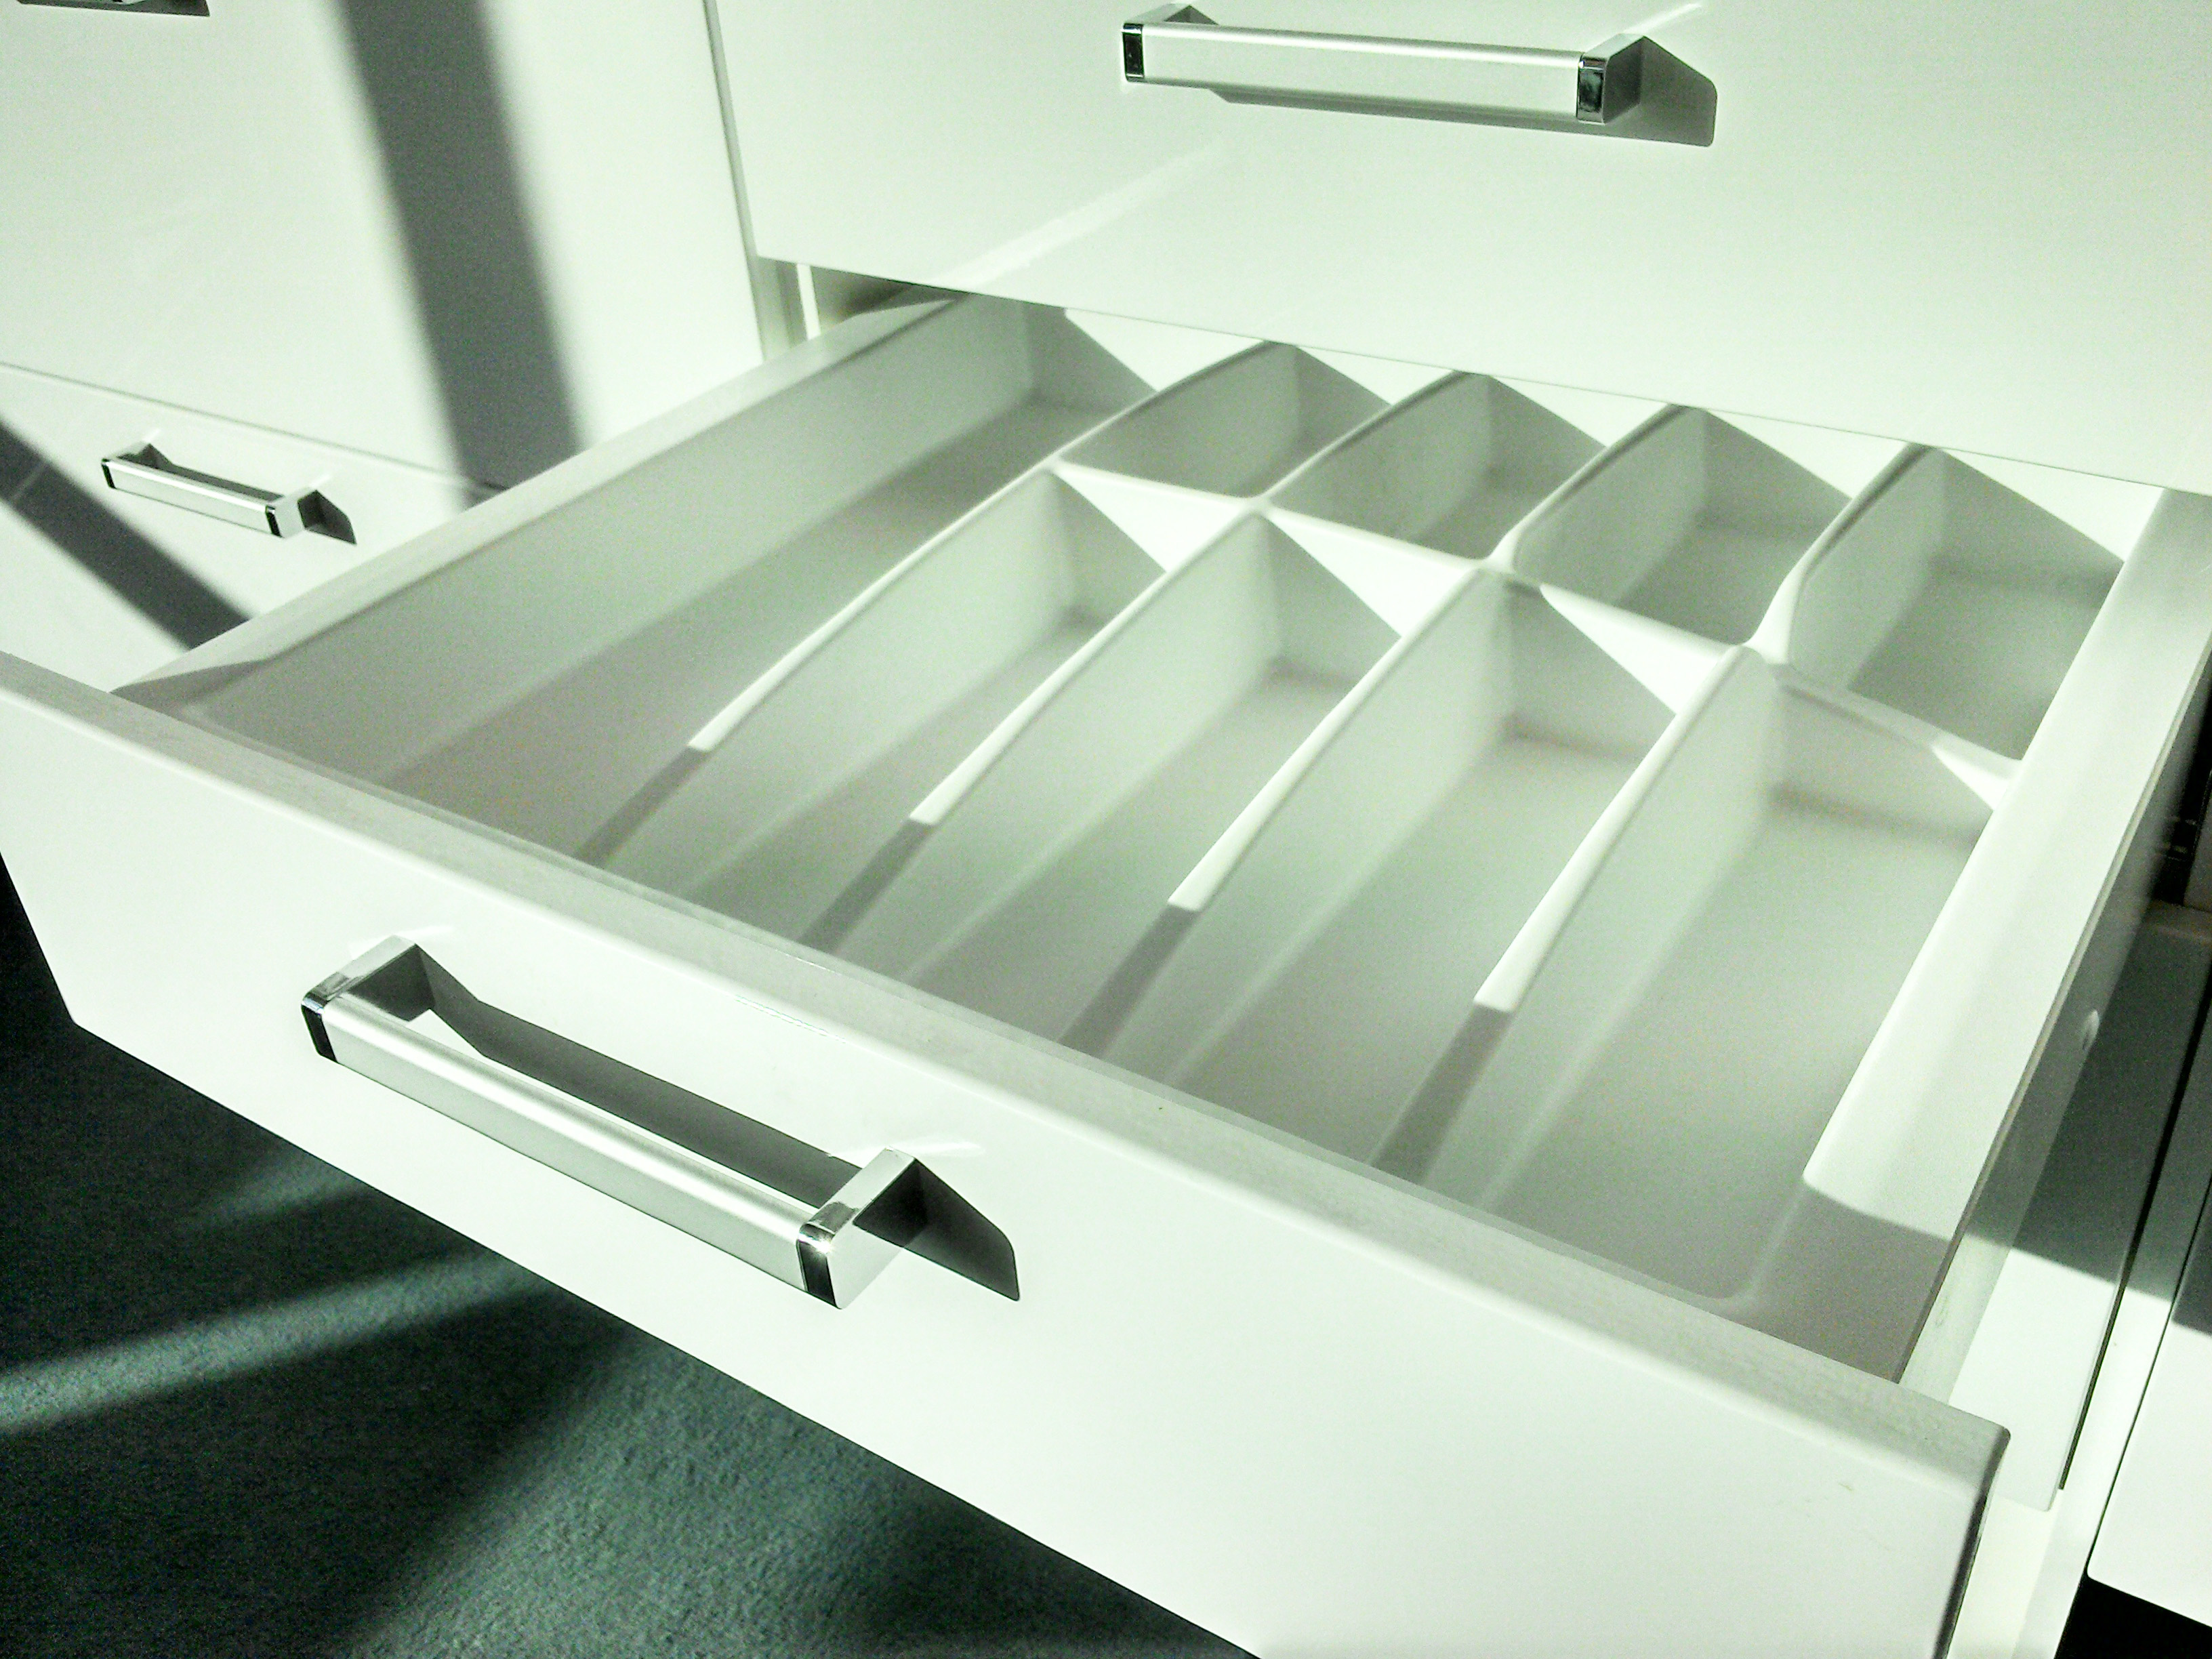 600mm wide Plastic Cutlery Insert fro Kitchen Drawers